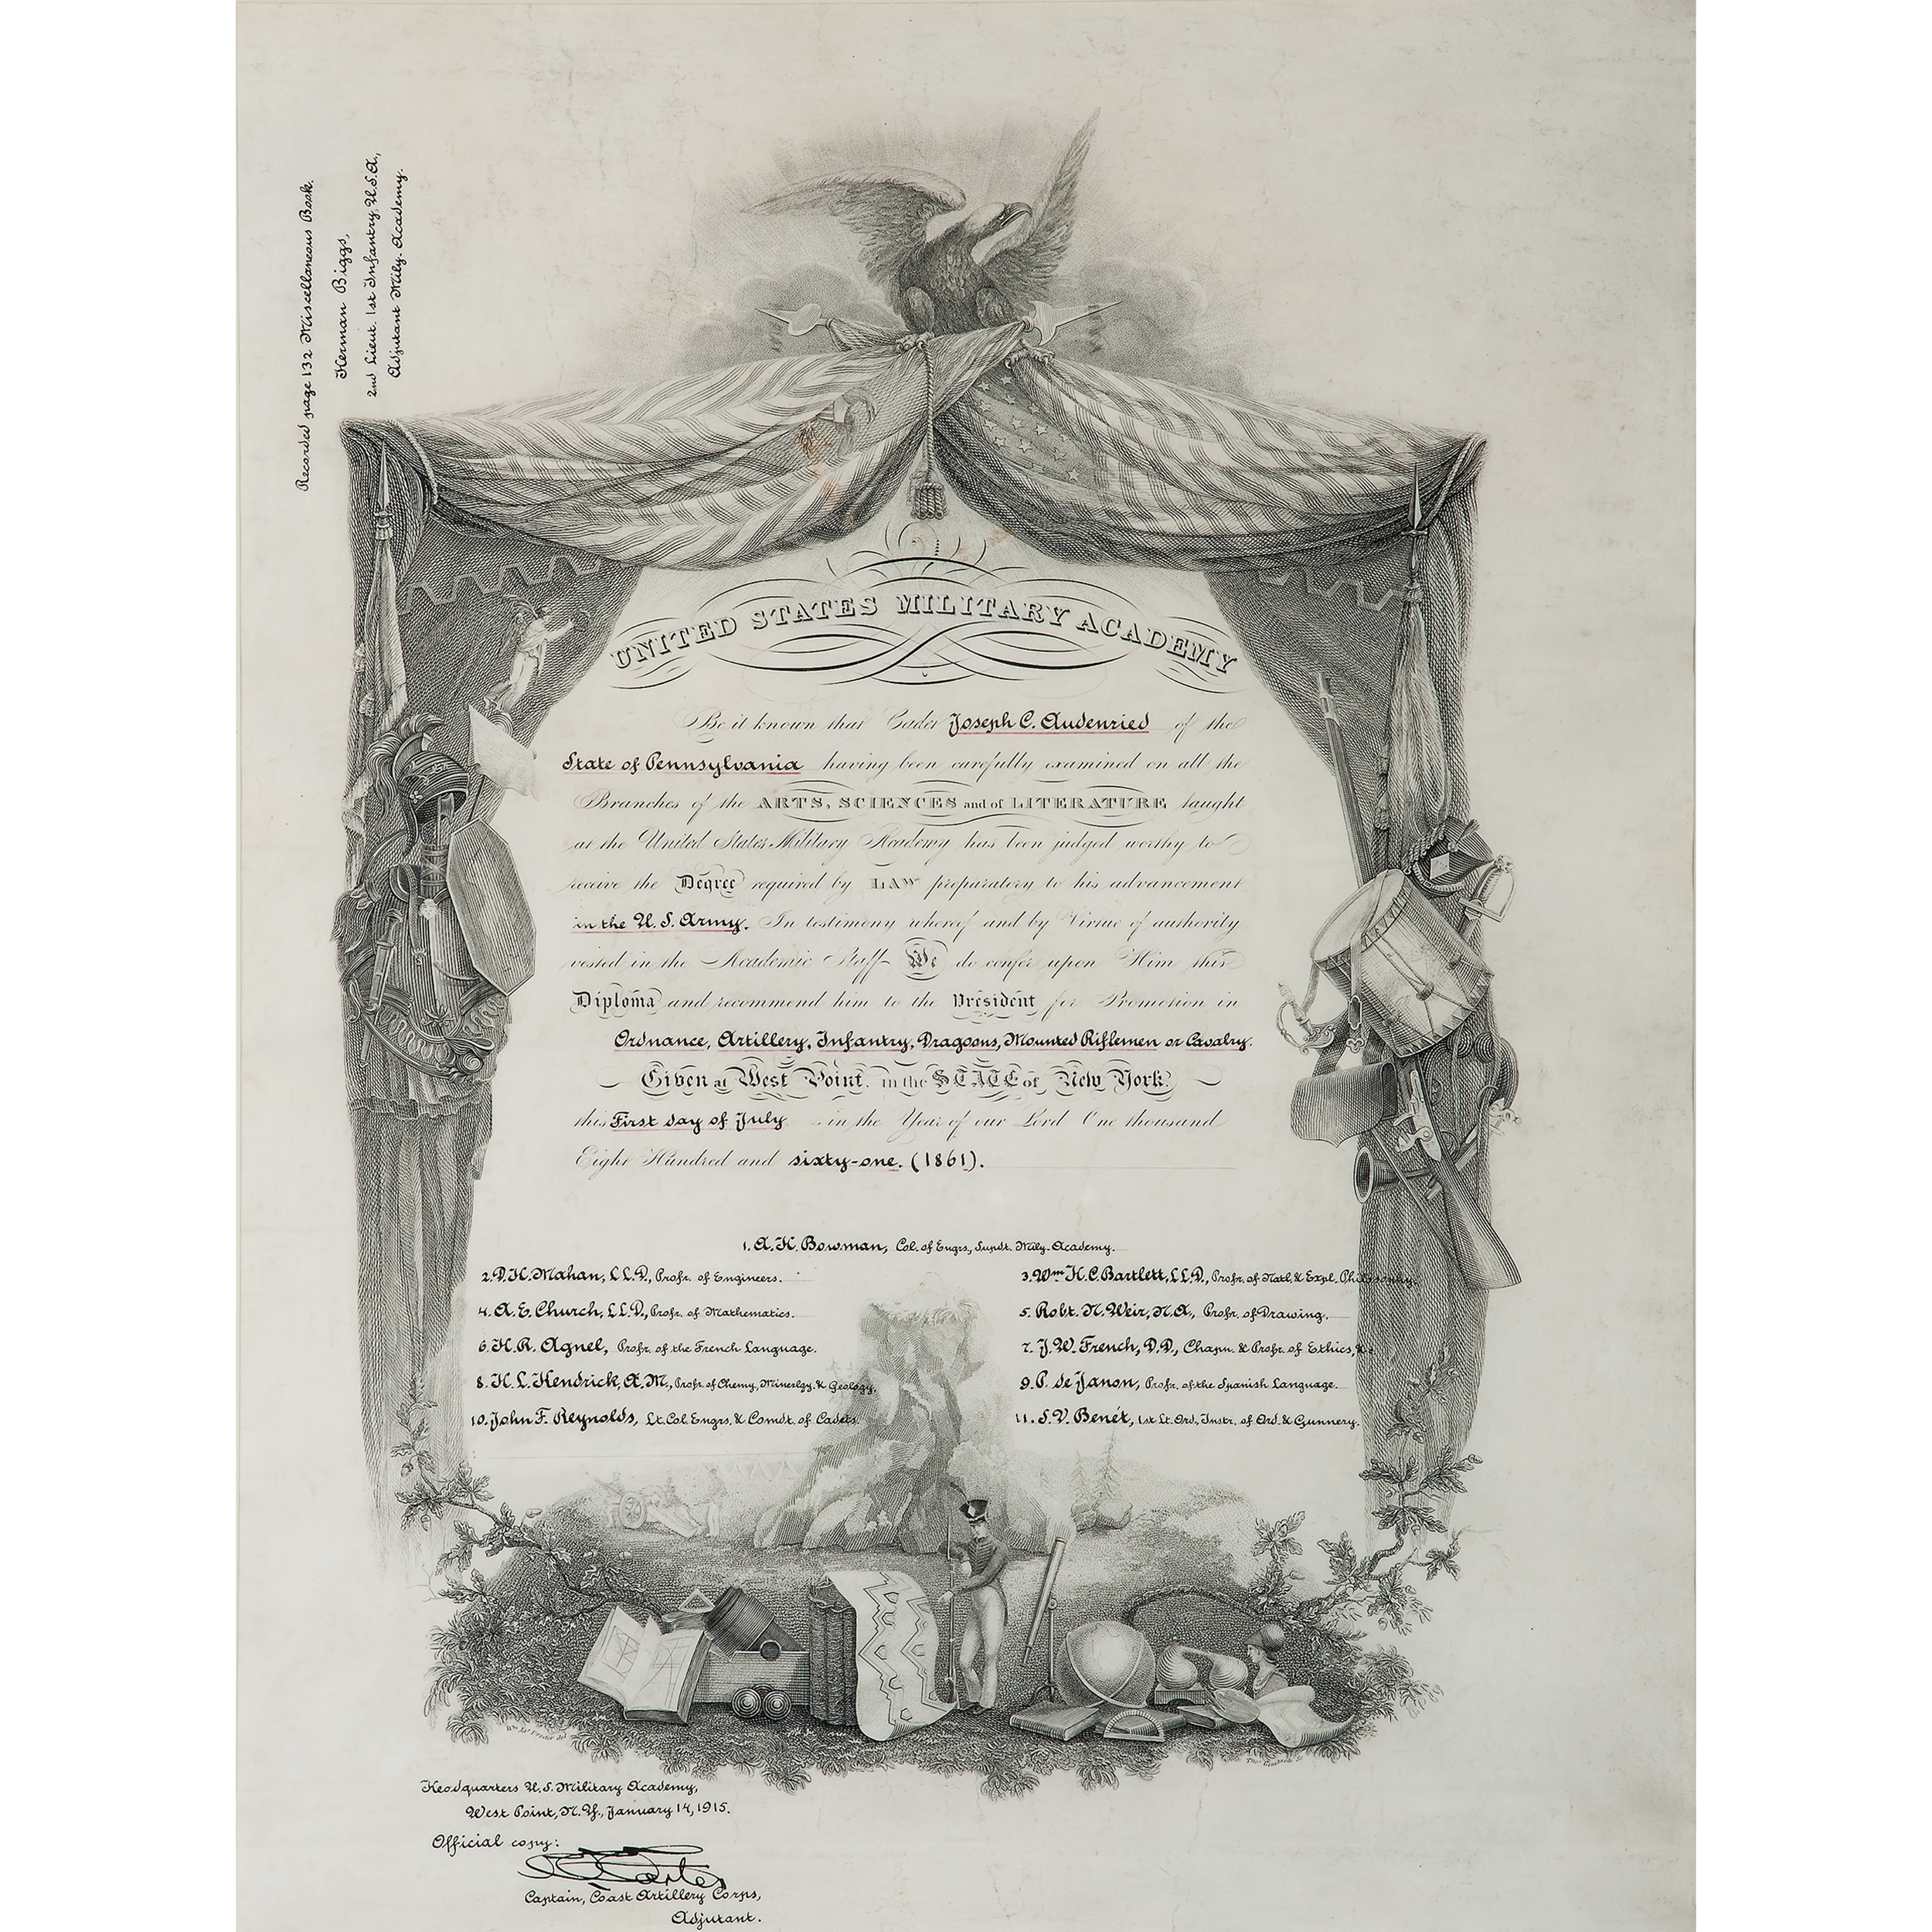 West Point Certificate Of Graduation For Joseph C Audenried Plus